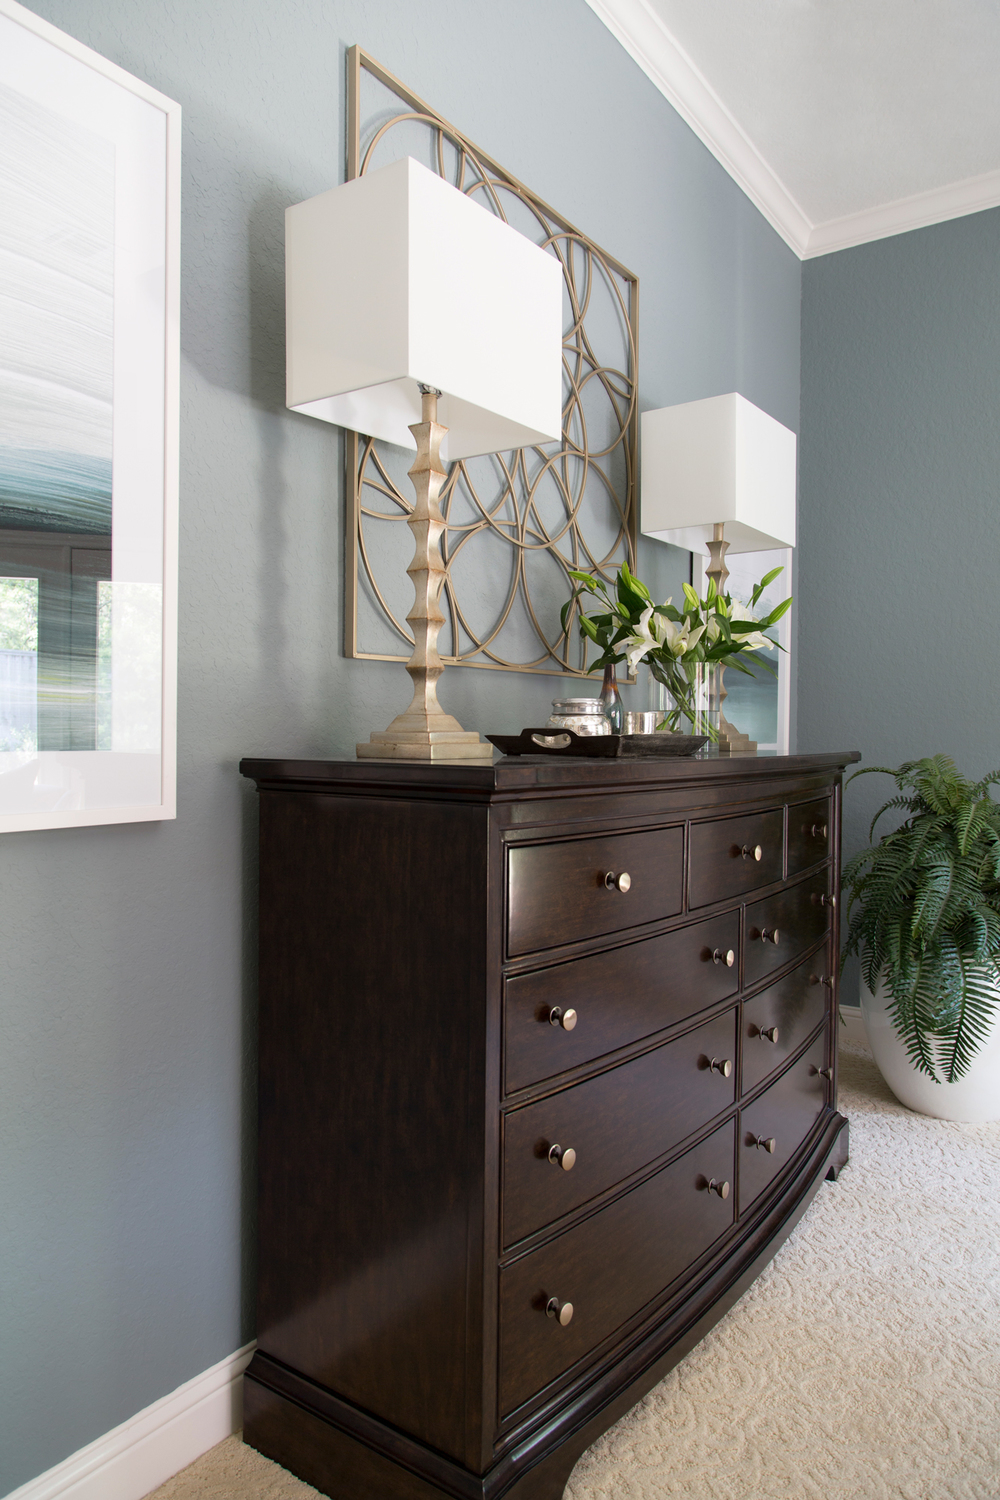 Bedroom dresser, lamp, art, decor | Interior Designer: Carla Aston / Photographer: Tori Aston